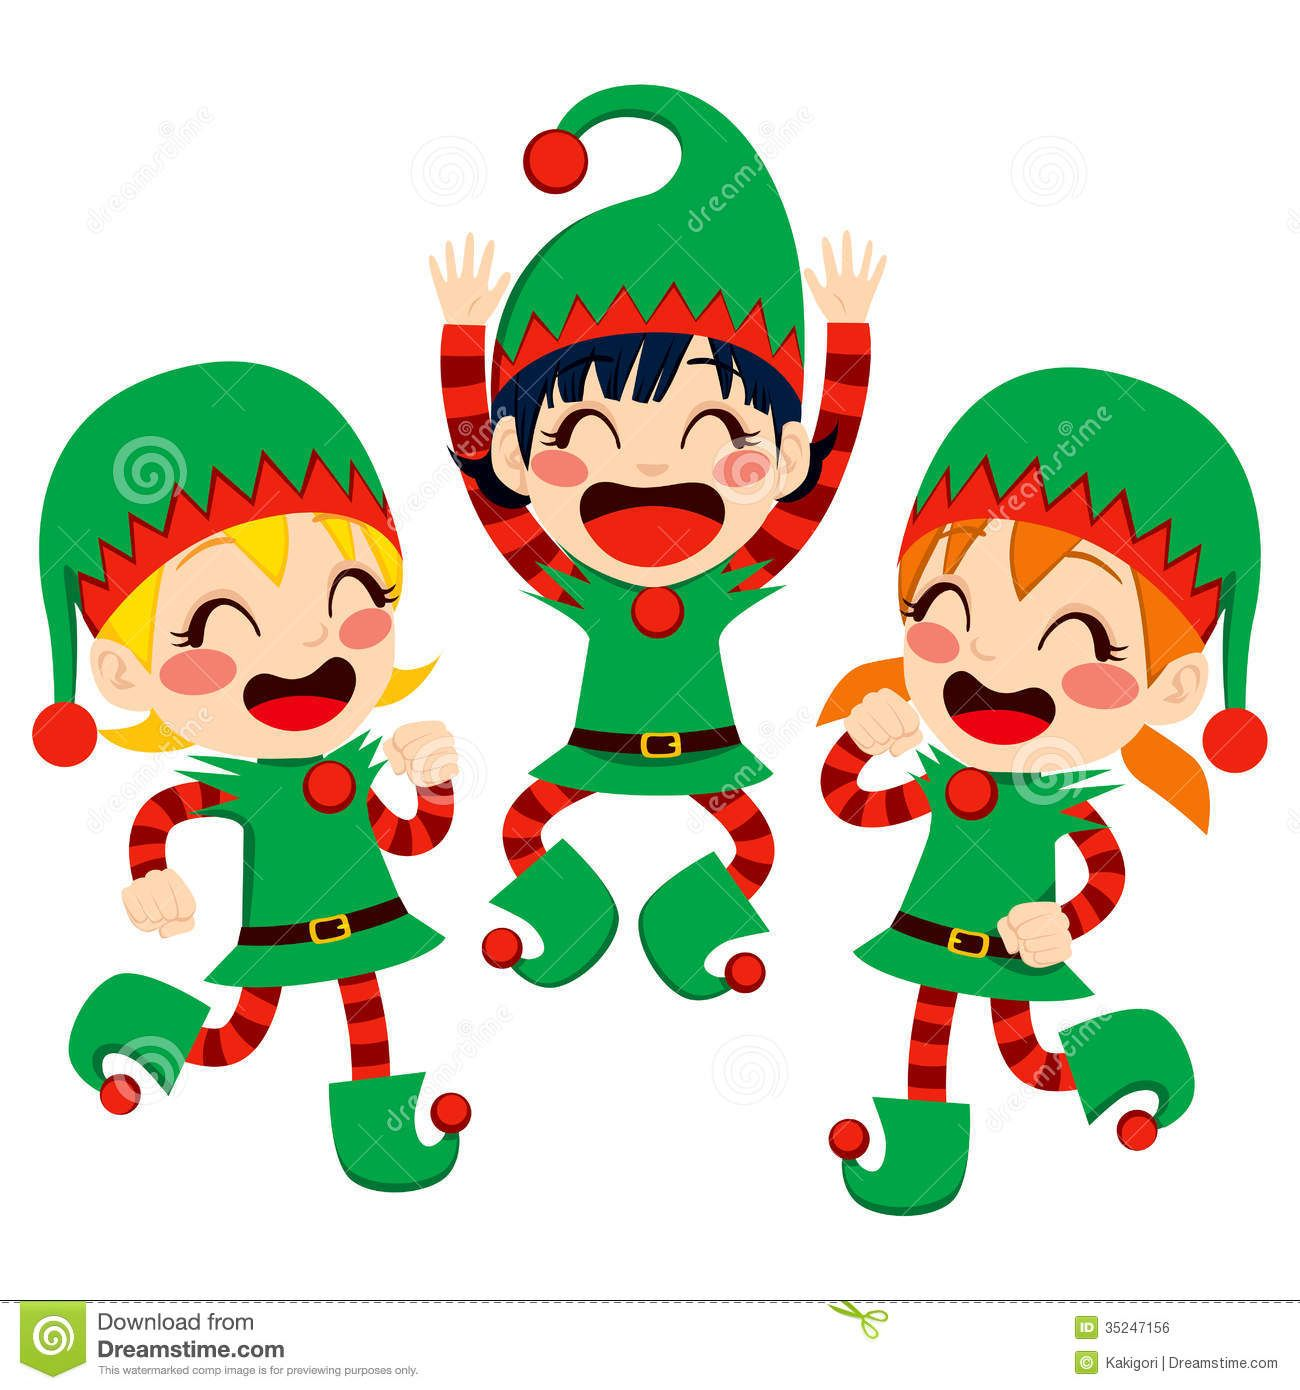 Dancing elf clipart royalty free download Pin by Reba Gibbons on A Very Merry CHRISTmas . | Christmas clipart ... royalty free download